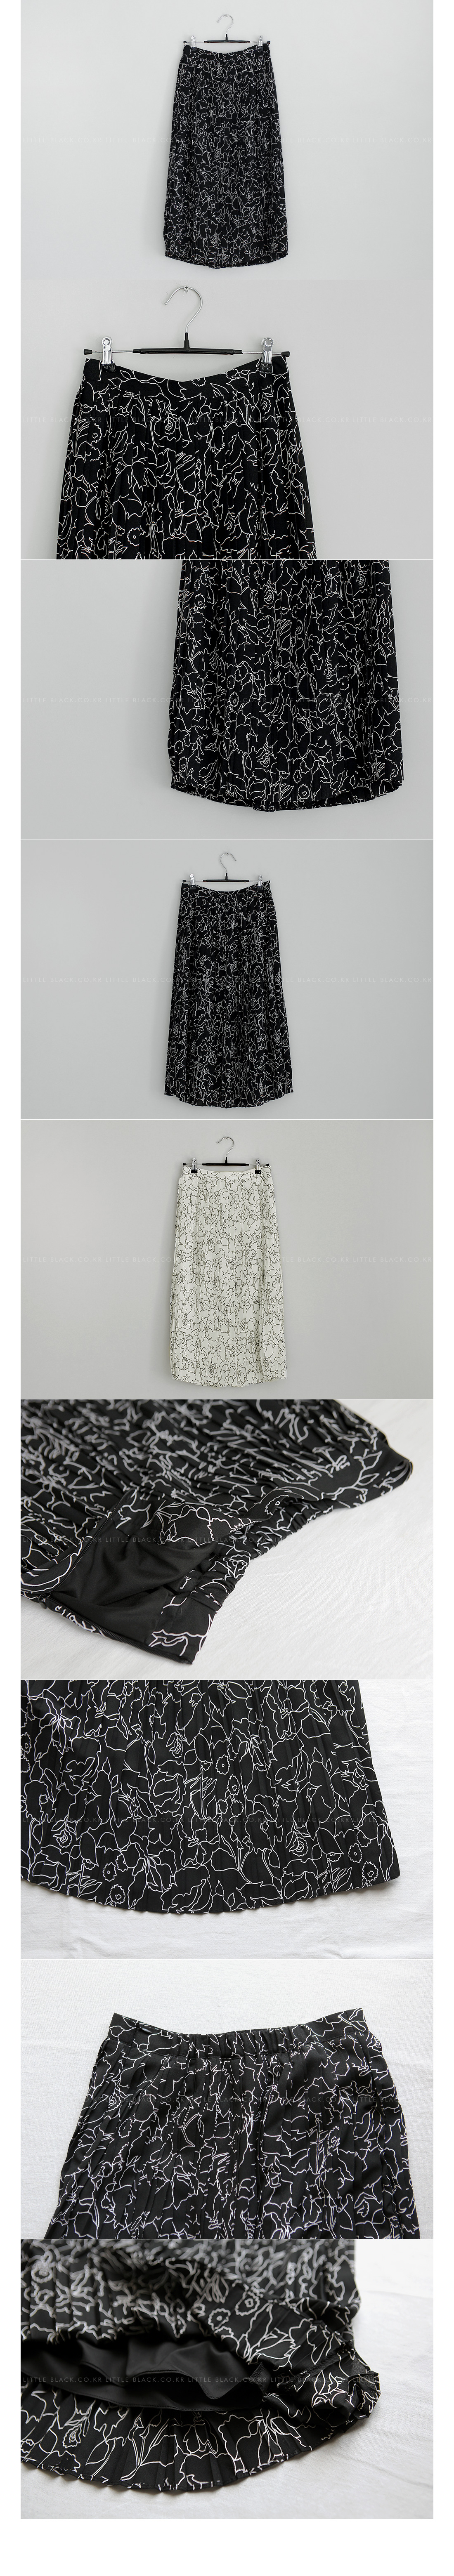 Pleated Floral Print Skirt|